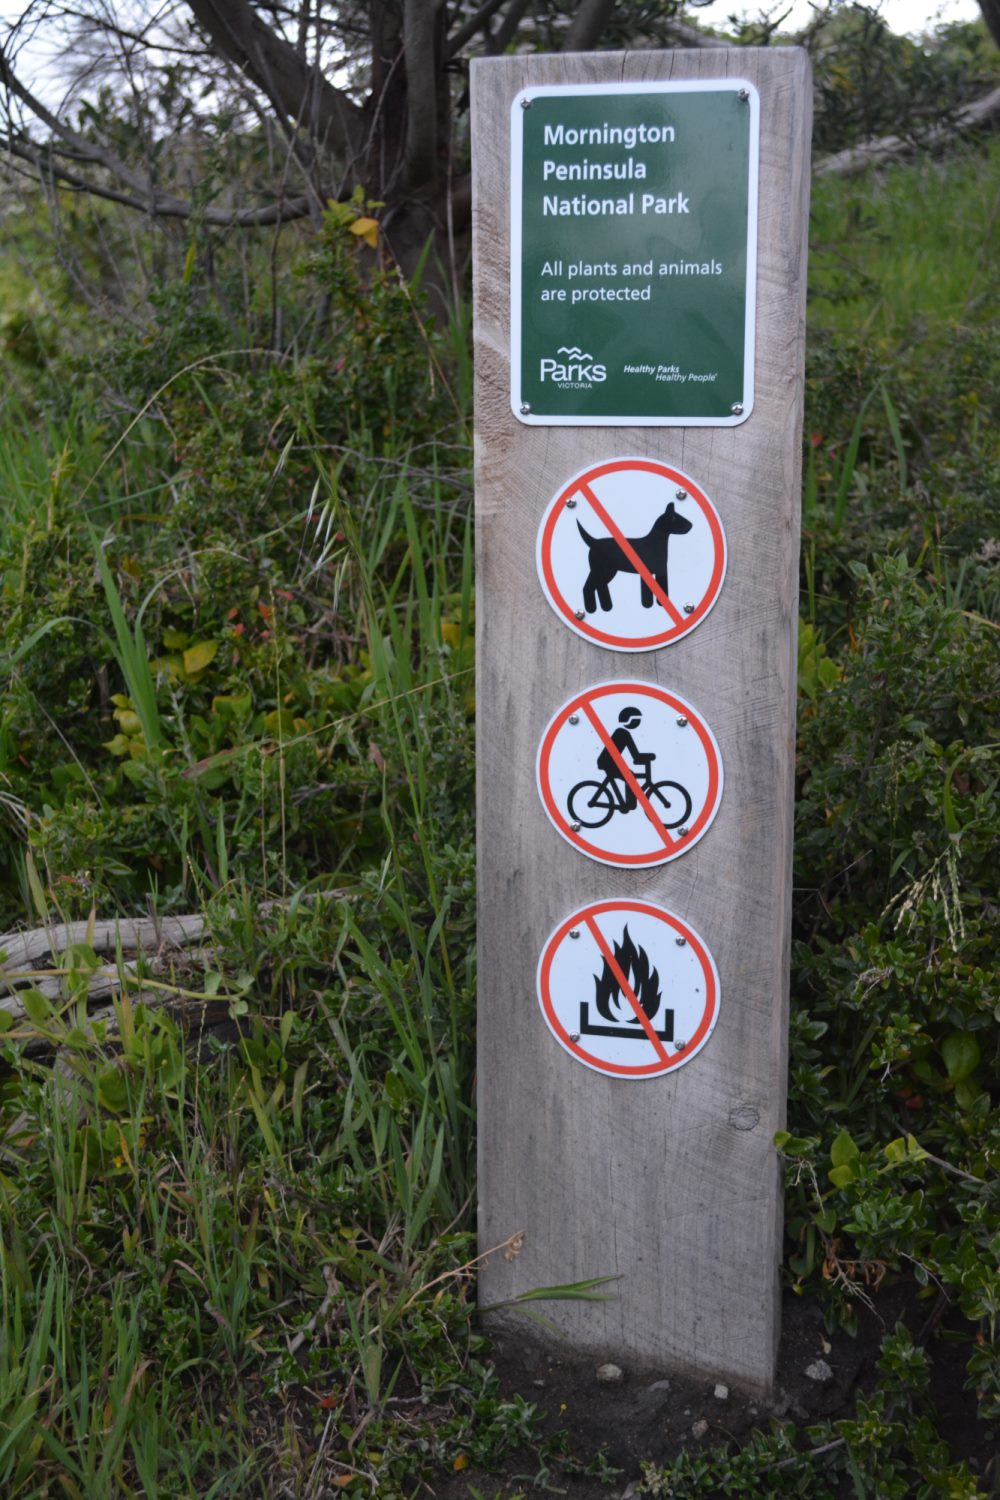 Notices in the national park